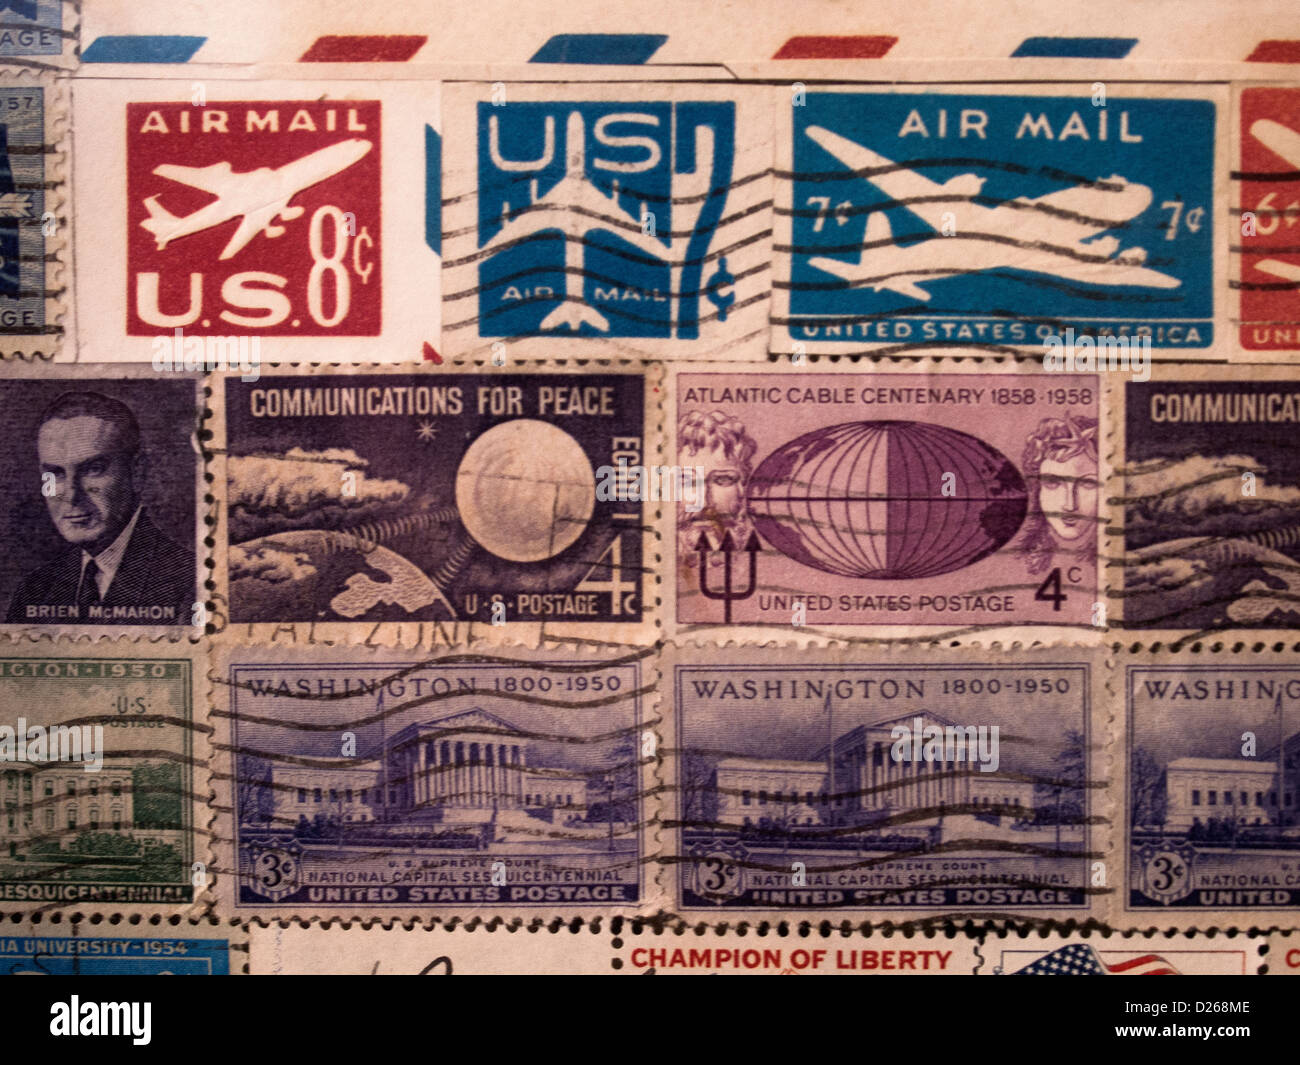 Canceled stamps from the 1950's, show propeller and jet planes in stamps that just cost a few cents. - Stock Image